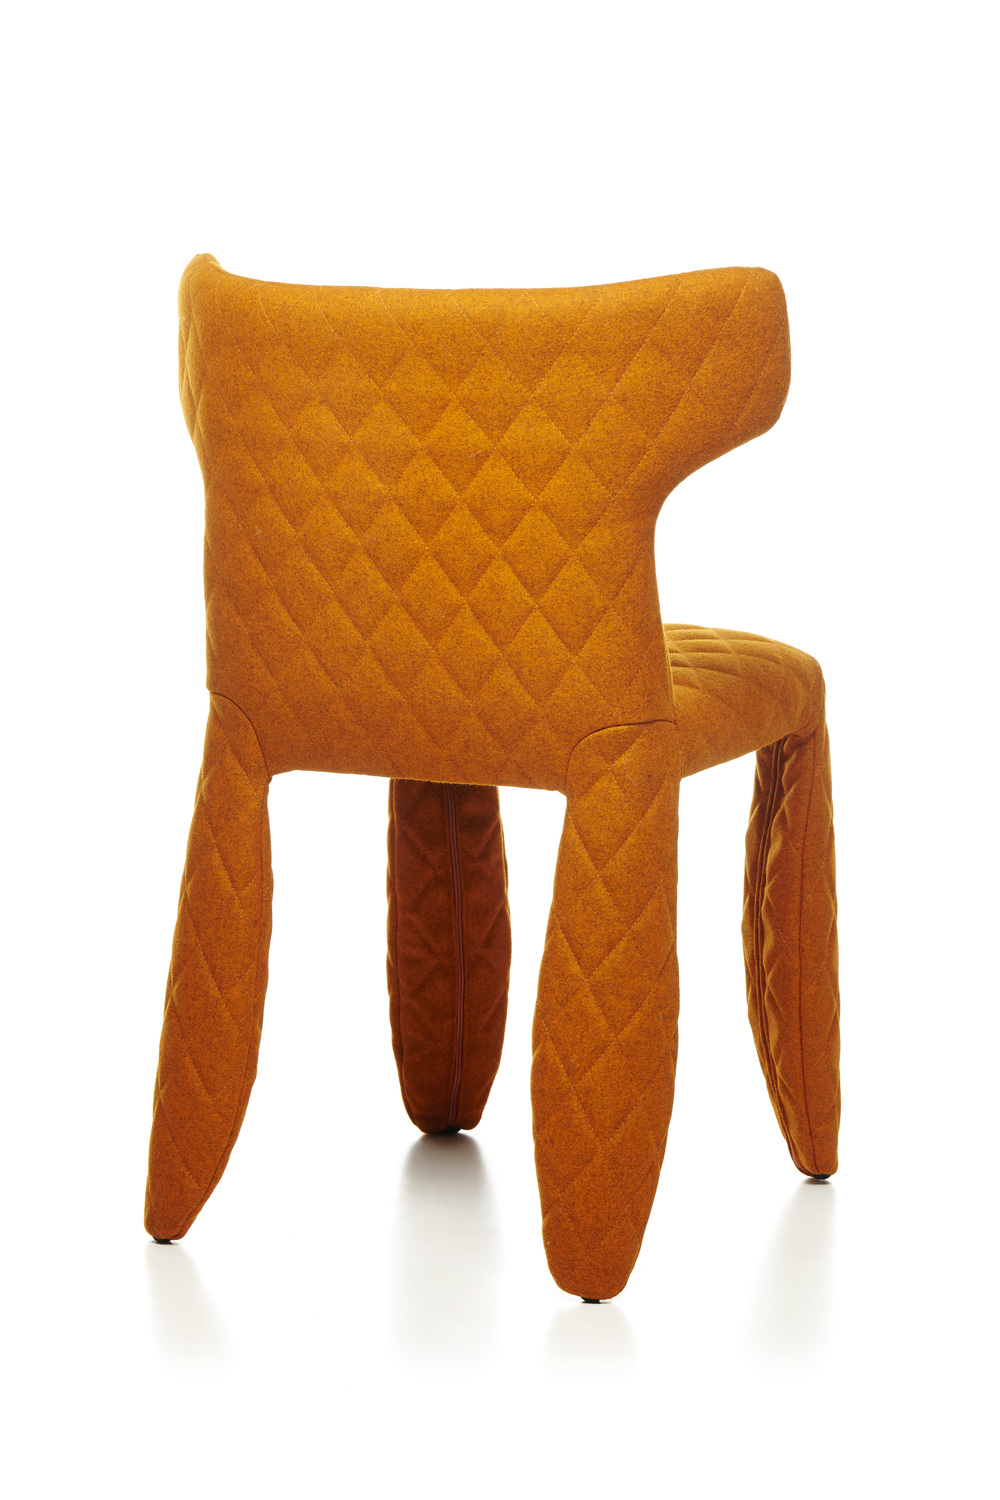 monster_chair_divina_521_by_marcel_wanders_for_moooi